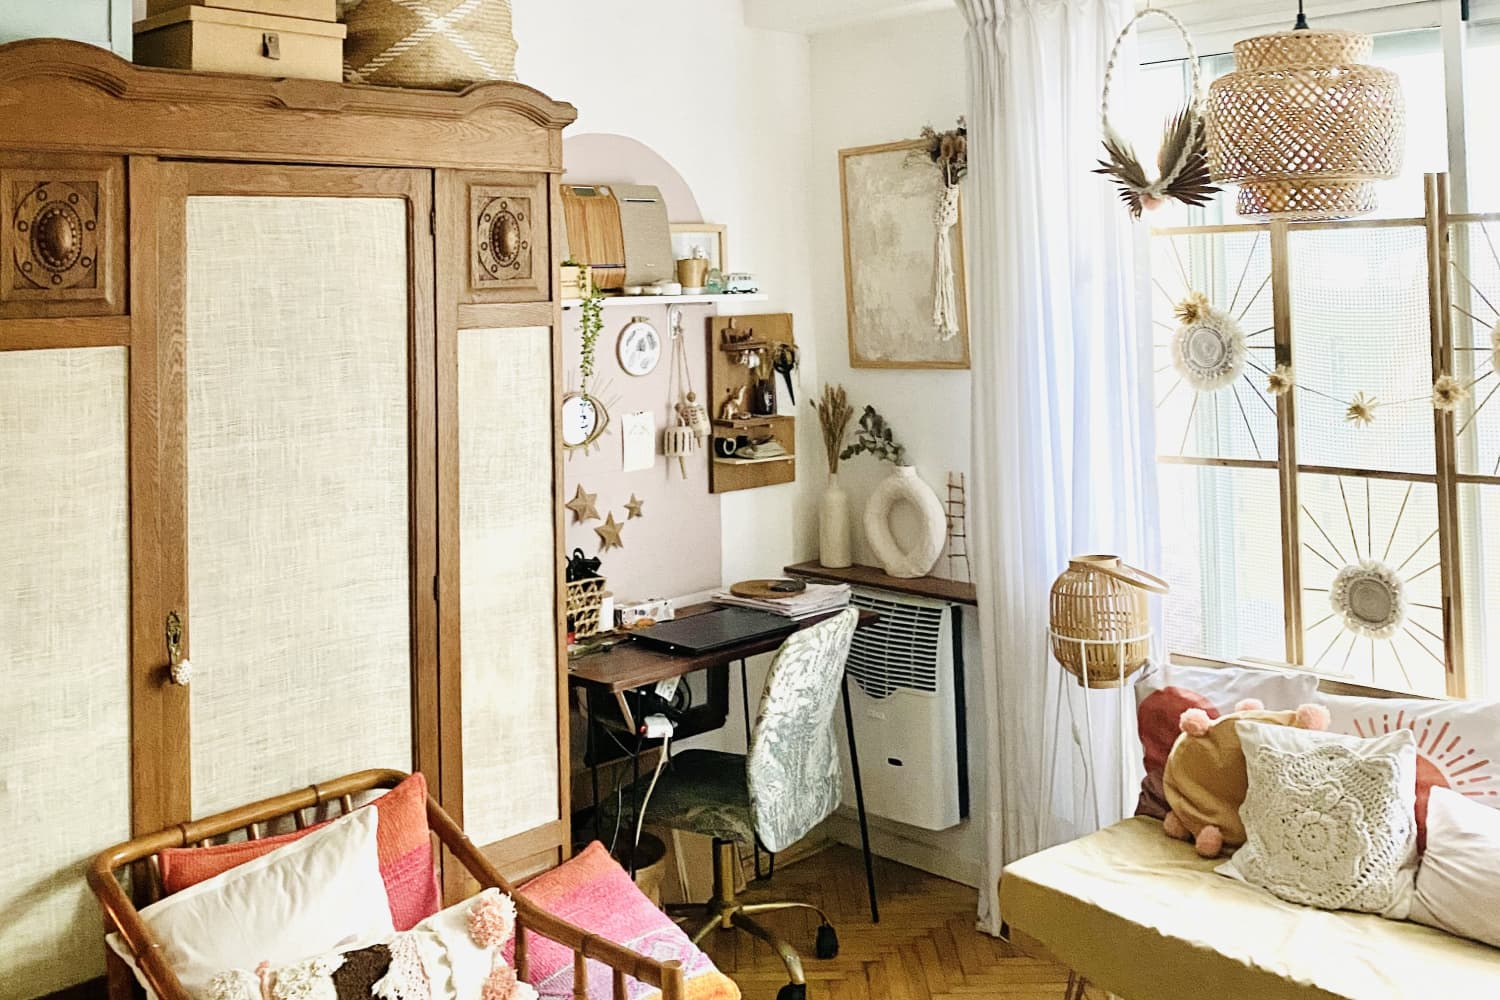 A 452-Square-Foot Buenos Aires Home Fits a TON of Inspiring DIY Projects